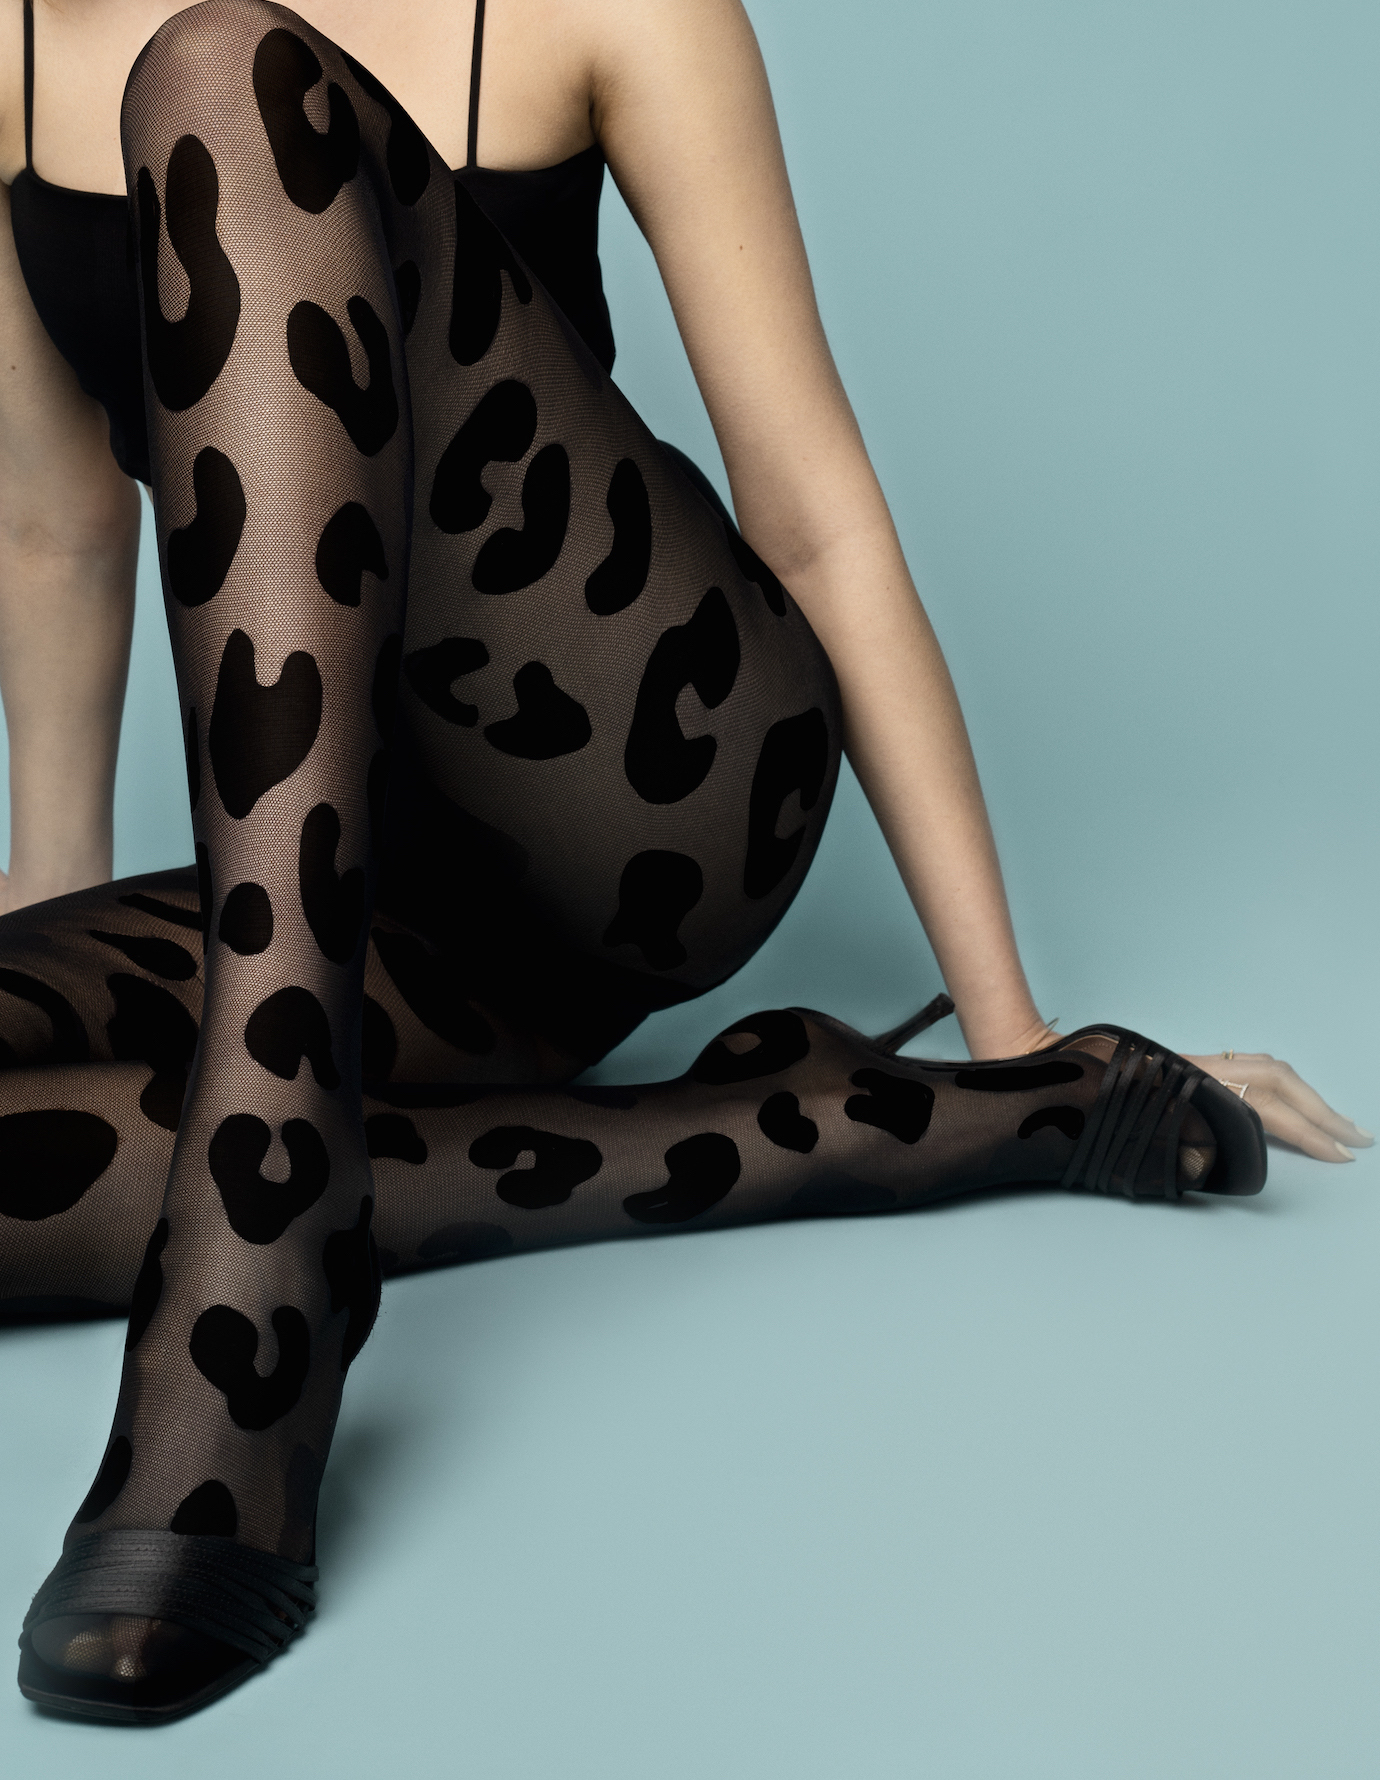 Fiore: Glamorous Black Leopard Patterned Tights